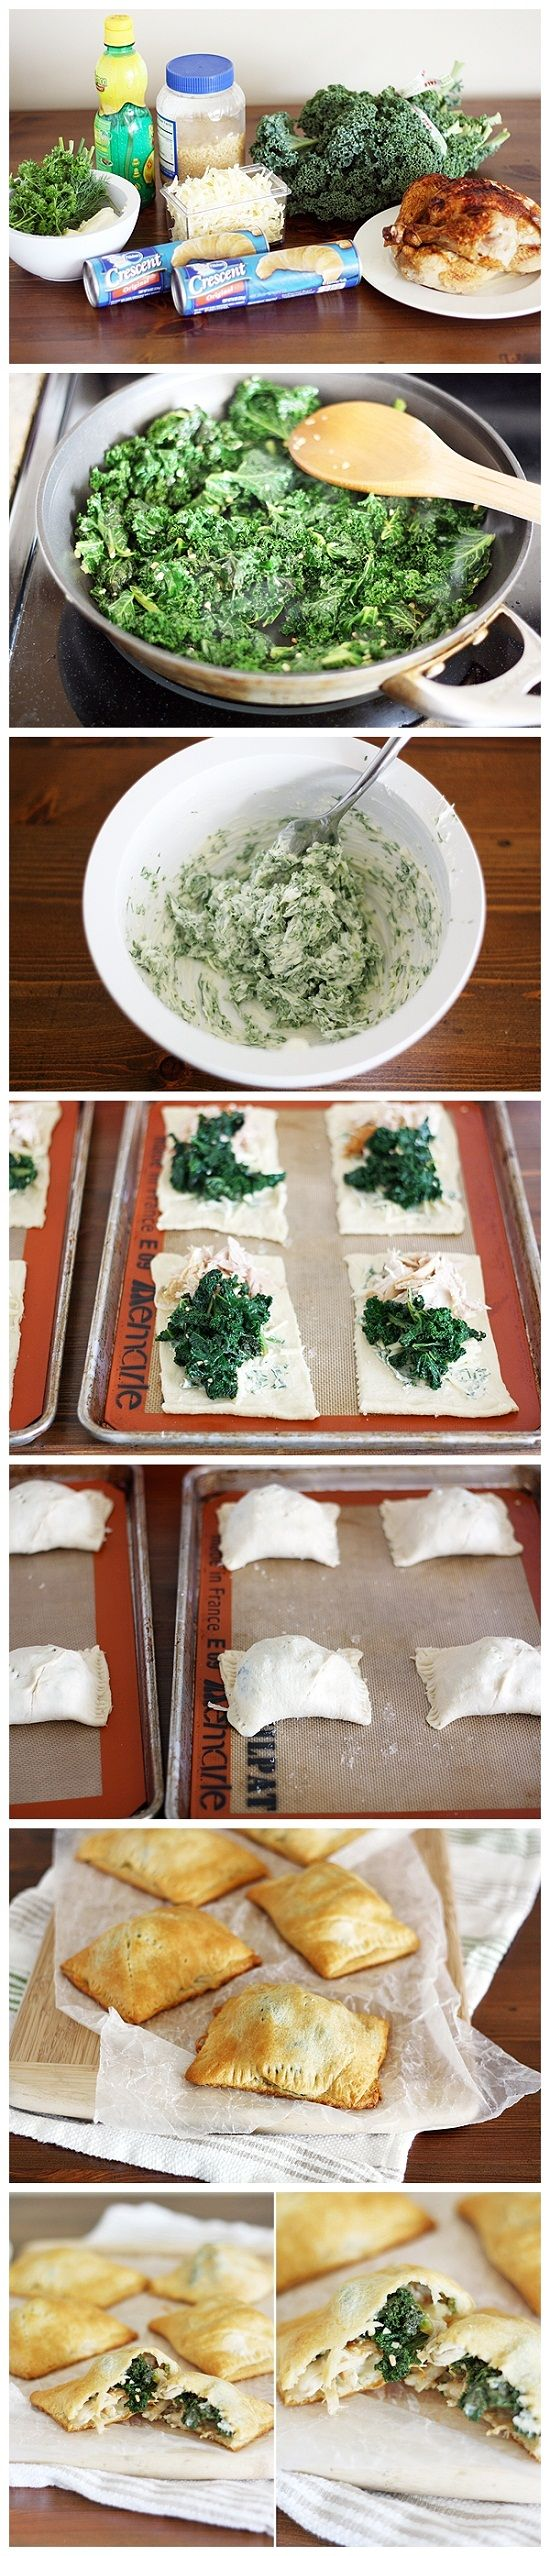 Chicken Kiev and Kale Pockets - 1 bunch kale, washed and stems removed - 2 teaspoons minced garlic - 1 teaspoon lemon juice - salt and pepper to taste - 5 tablespoons butter, softened - 2 tablespoons chopped dill - 2 tablespoons chopped parsley - 2 tablespoons chopped chives - 2 cans Pillsbury crescent rolls - 1 1/2 cups shredded white cheddar cheese - 2 cups shredded rotisserie chicken